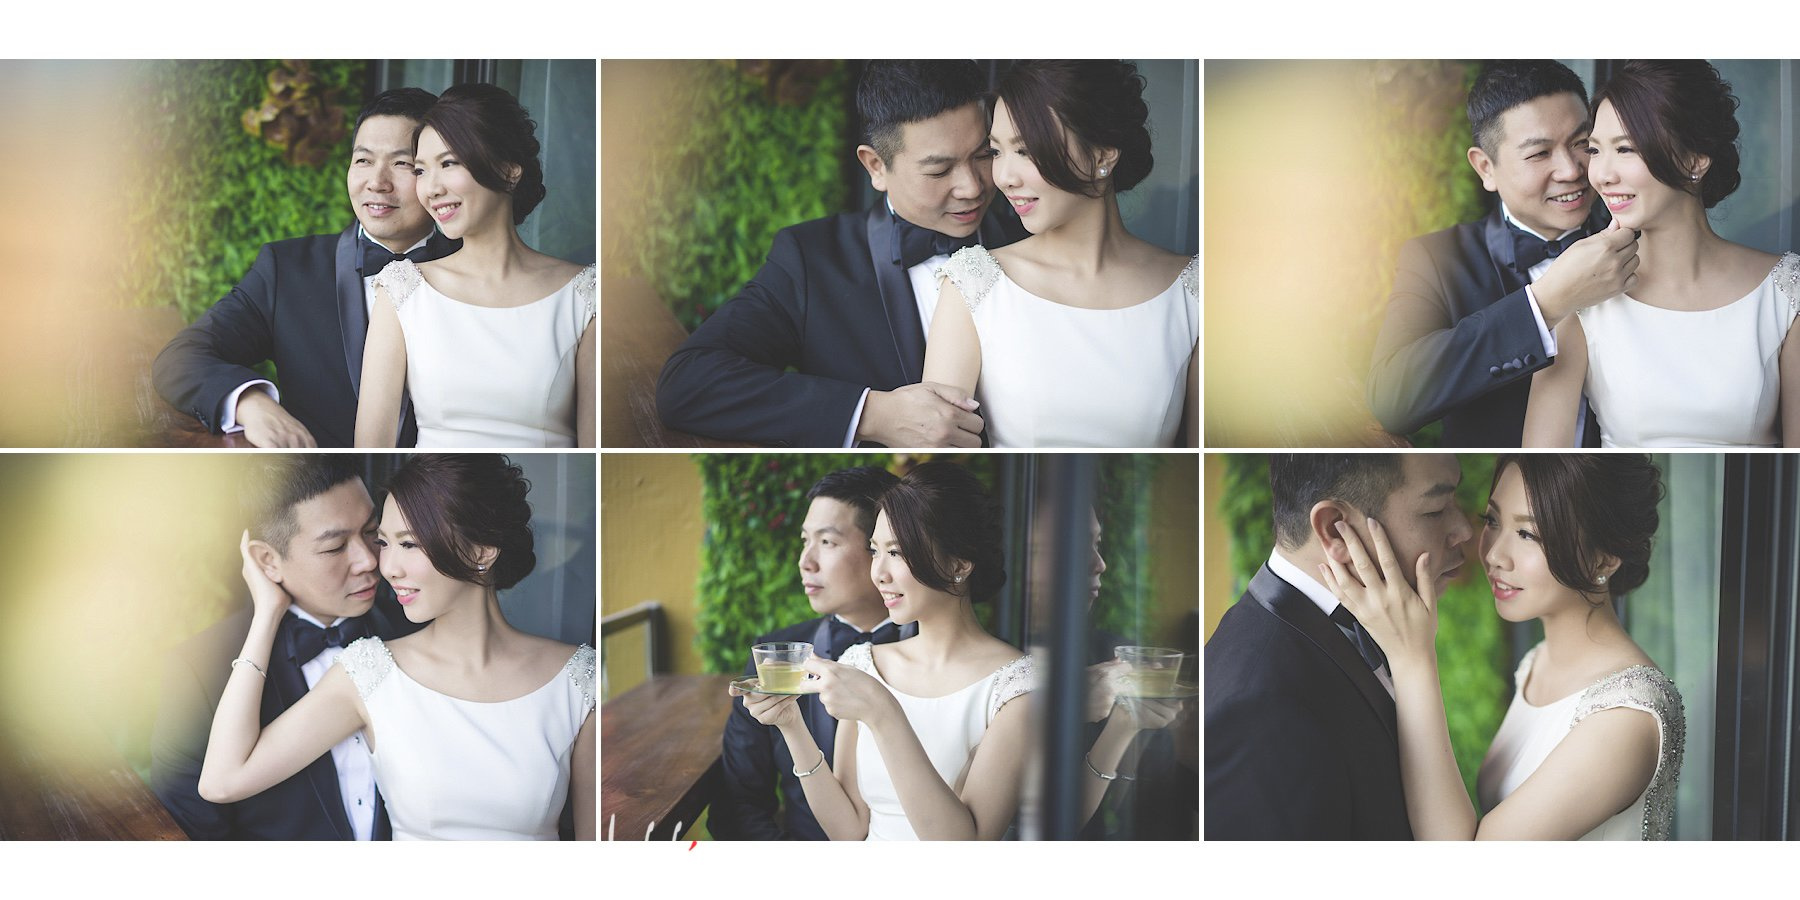 Tammy & Andy's Prewedding (studio shoot) | 影樓/室內婚紗攝影